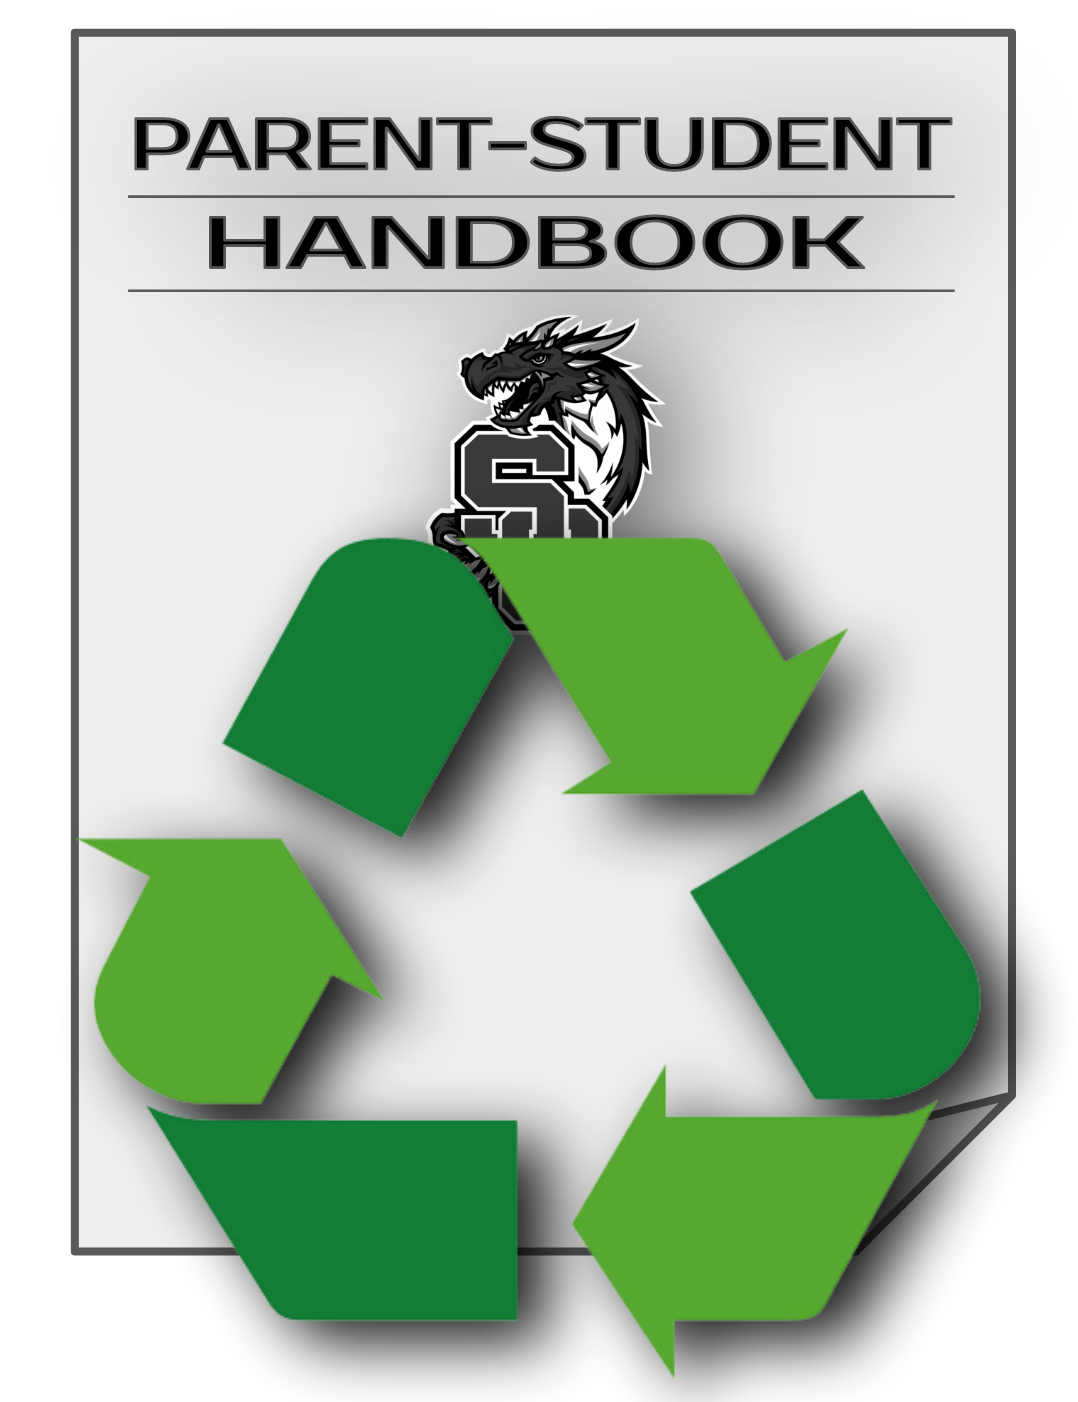 Be Green - Use Online Handbook!